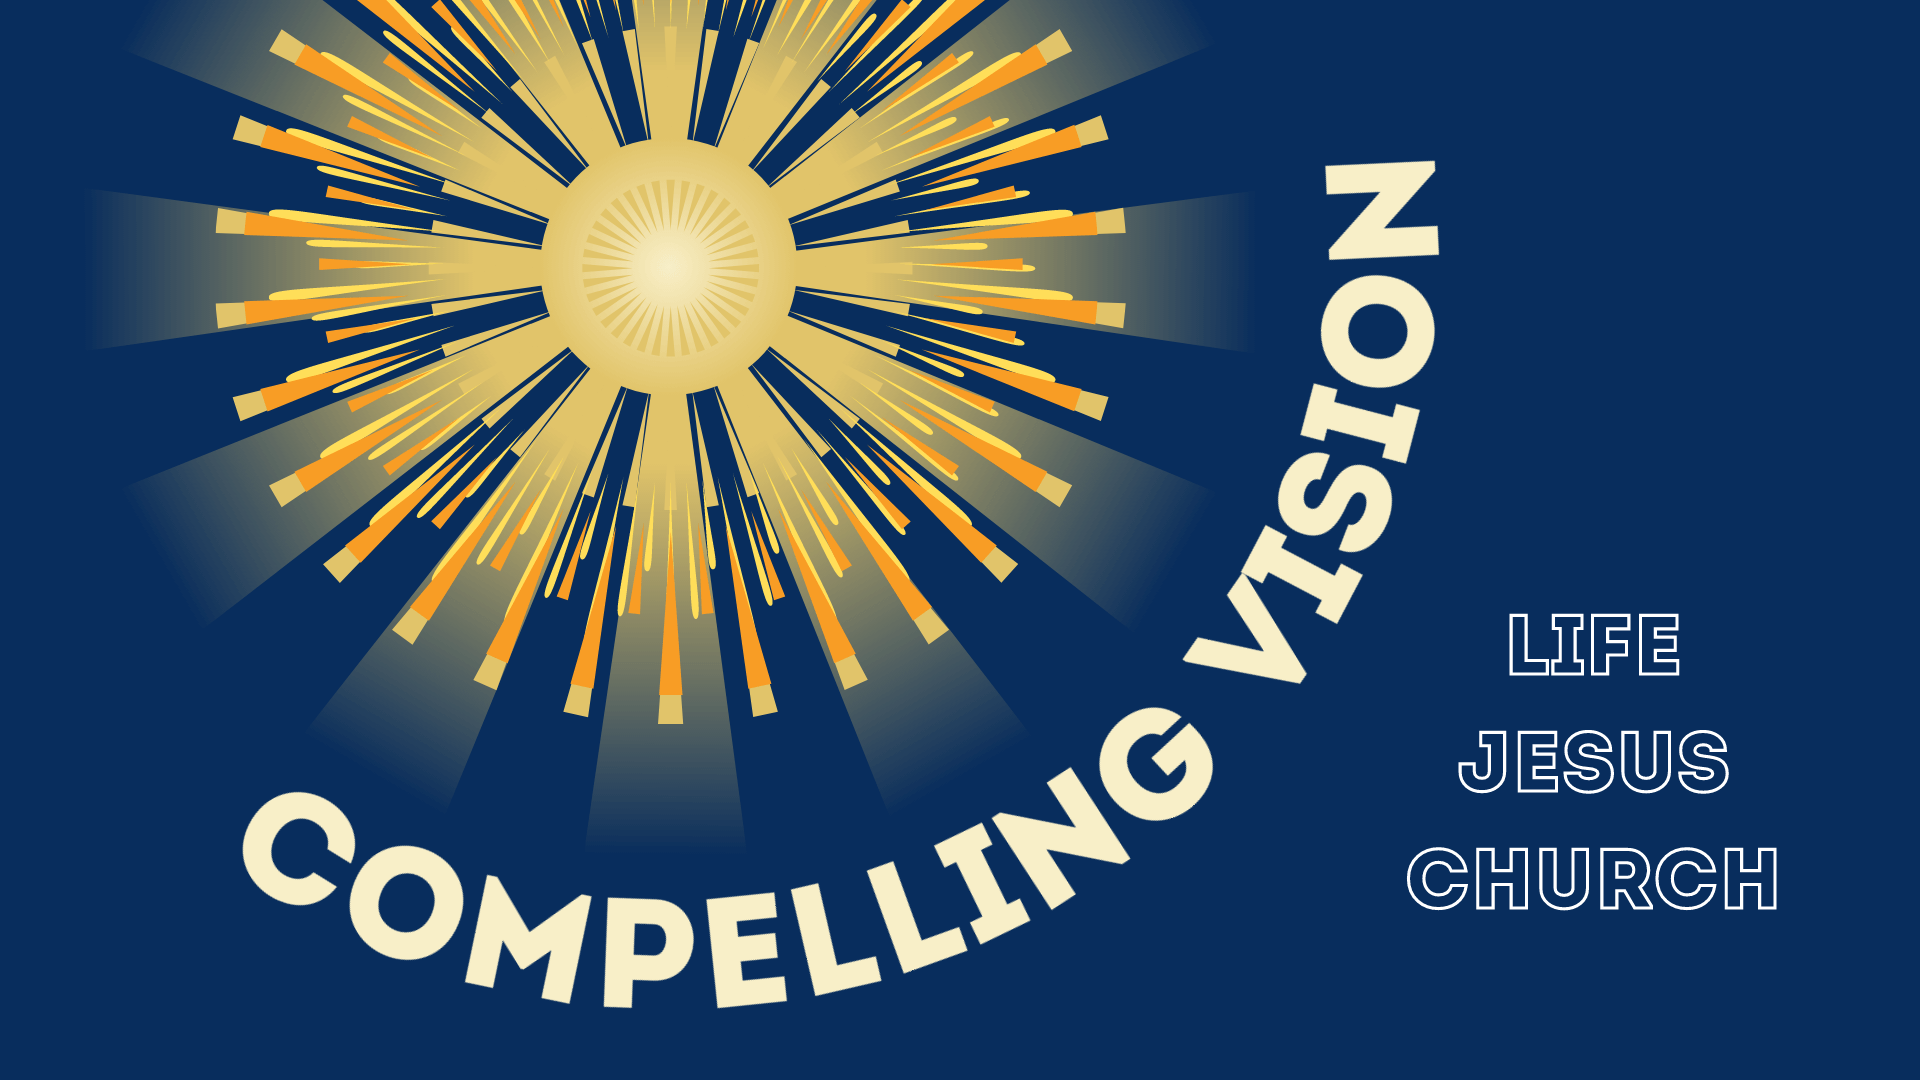 Compelling Vision